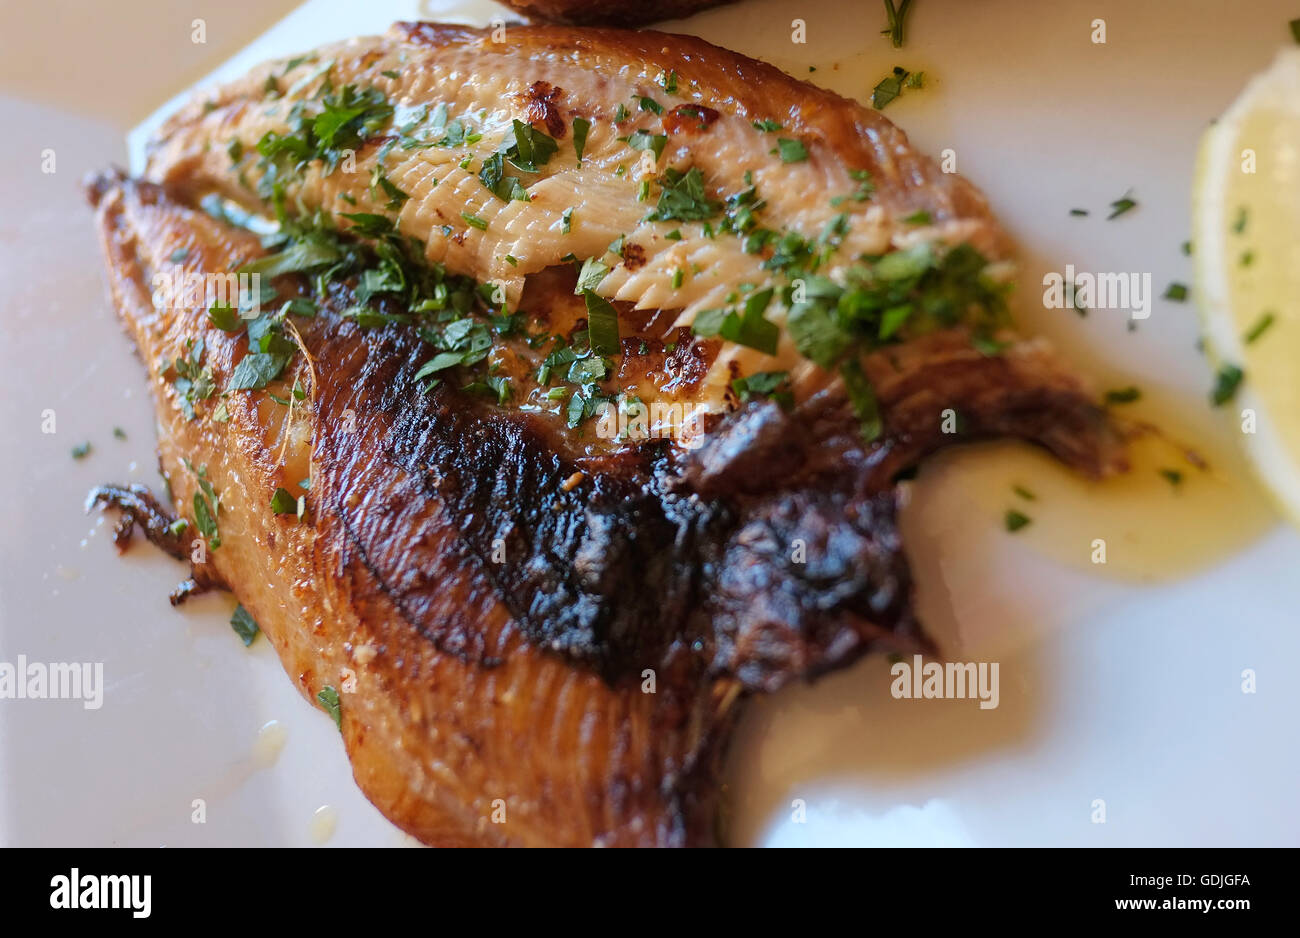 grilled north norfolk kipper on a white plate - Stock Image